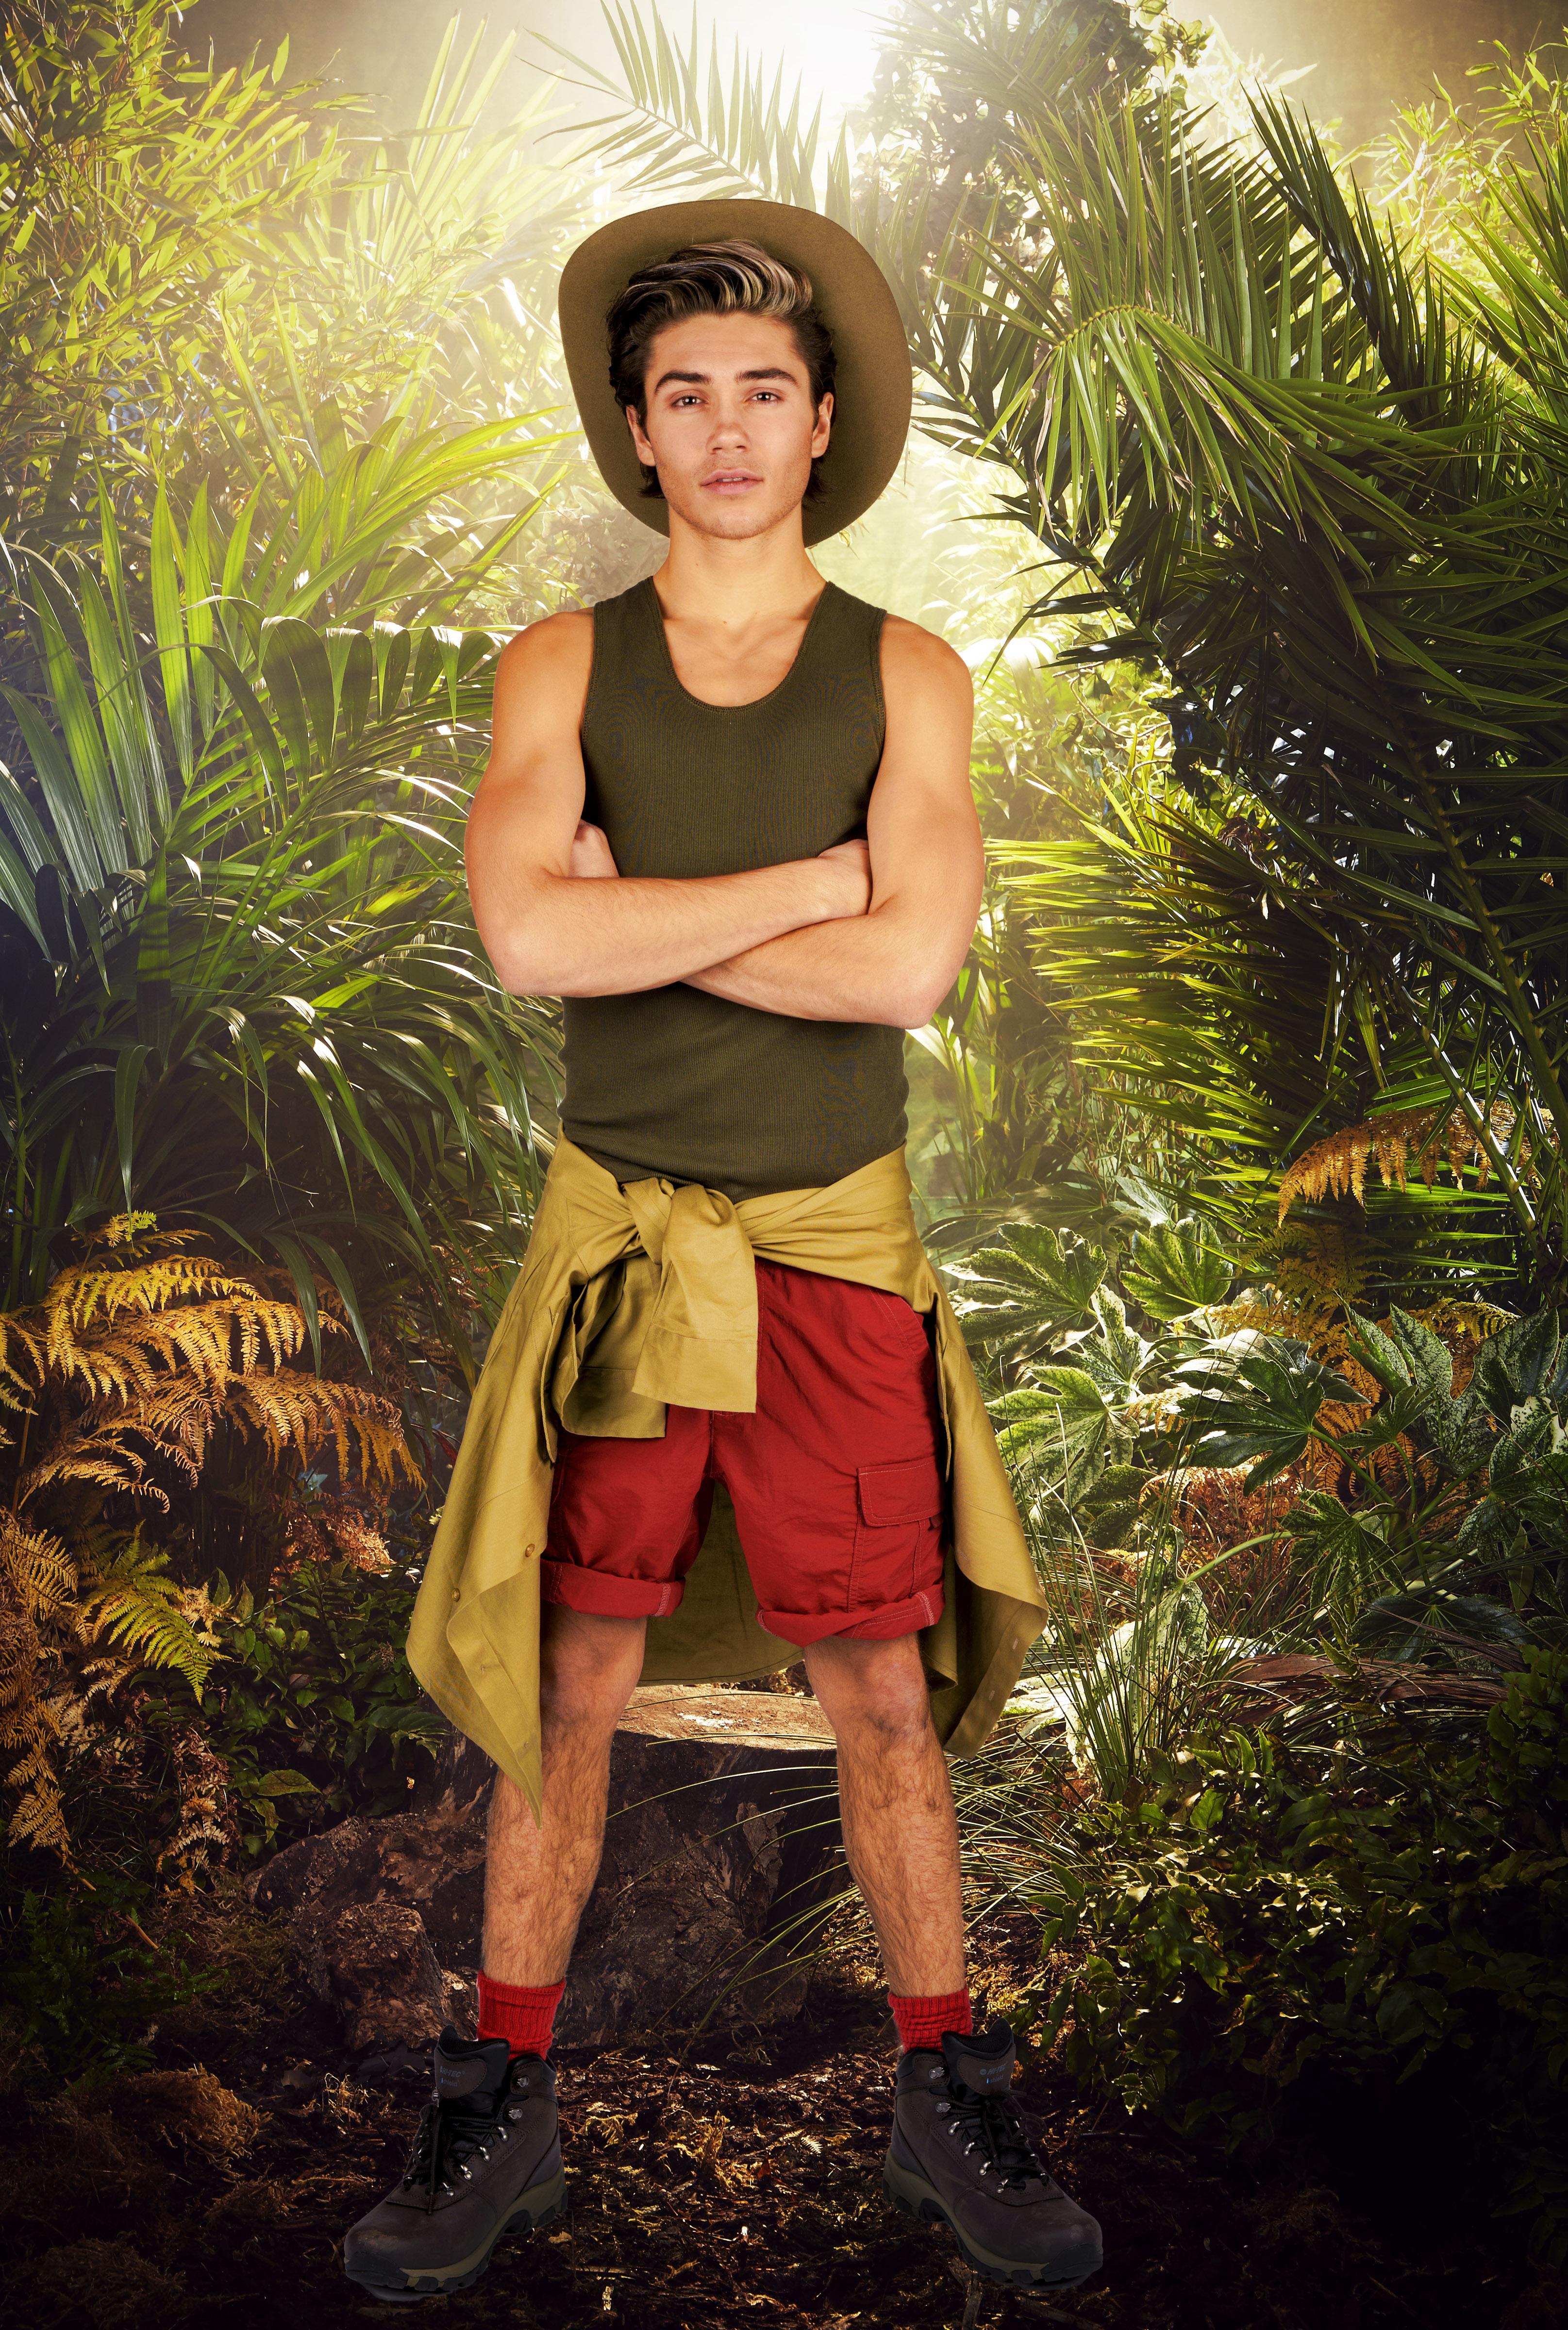 IÕM A CELEBRITYÉGET ME OUT OF HERE 2015 PICTURE SHOWS: GEORGE SHELLEY IÕm A CelebrityÉGet Me Out Of Here! is back which can mean only one thingÉ the time has come for a brand new cast of celebrities to head down under and battle it out in TVÕs toughest challenge. Leaving their plush pads and luxuries far behind, our celebrity campers will spend up to three weeks taking on the harsh surroundings of the Australian jungle, with a whole host of brand new nasty surprises created just for them. This year, the IÕm a Celebrity team have pulled out all the stops to ensure this is the most talked about series yet. Last yearÕs highlights included Michael Buerk rapping with Tinchy Stryder, Kendra Wilkinson and Edwina Currie falling out in spectacular style and Gemma Collins going jungle AWOL after only a few days in camp. Whoever does end up in the terrifying and legendary jungle camp will find themselves cut off from the outside world and praying the public doesnÕt send them straight into a dreaded Bushtucker Trial. ItÕs a brand new cast with a brand new set of challenges. As always, our BAFTA award-winning hosts Ant and Dec, are back to present all the big stories live from the jungle every night. Who will be crowned this yearÕs King or Queen of the jungle? Find out this Autumn on ITV. And remember - IÕm A Celebrity...Get Me Out Of Here Now! is back every night on ITV2 after the ITV show. An ITV Studios production.